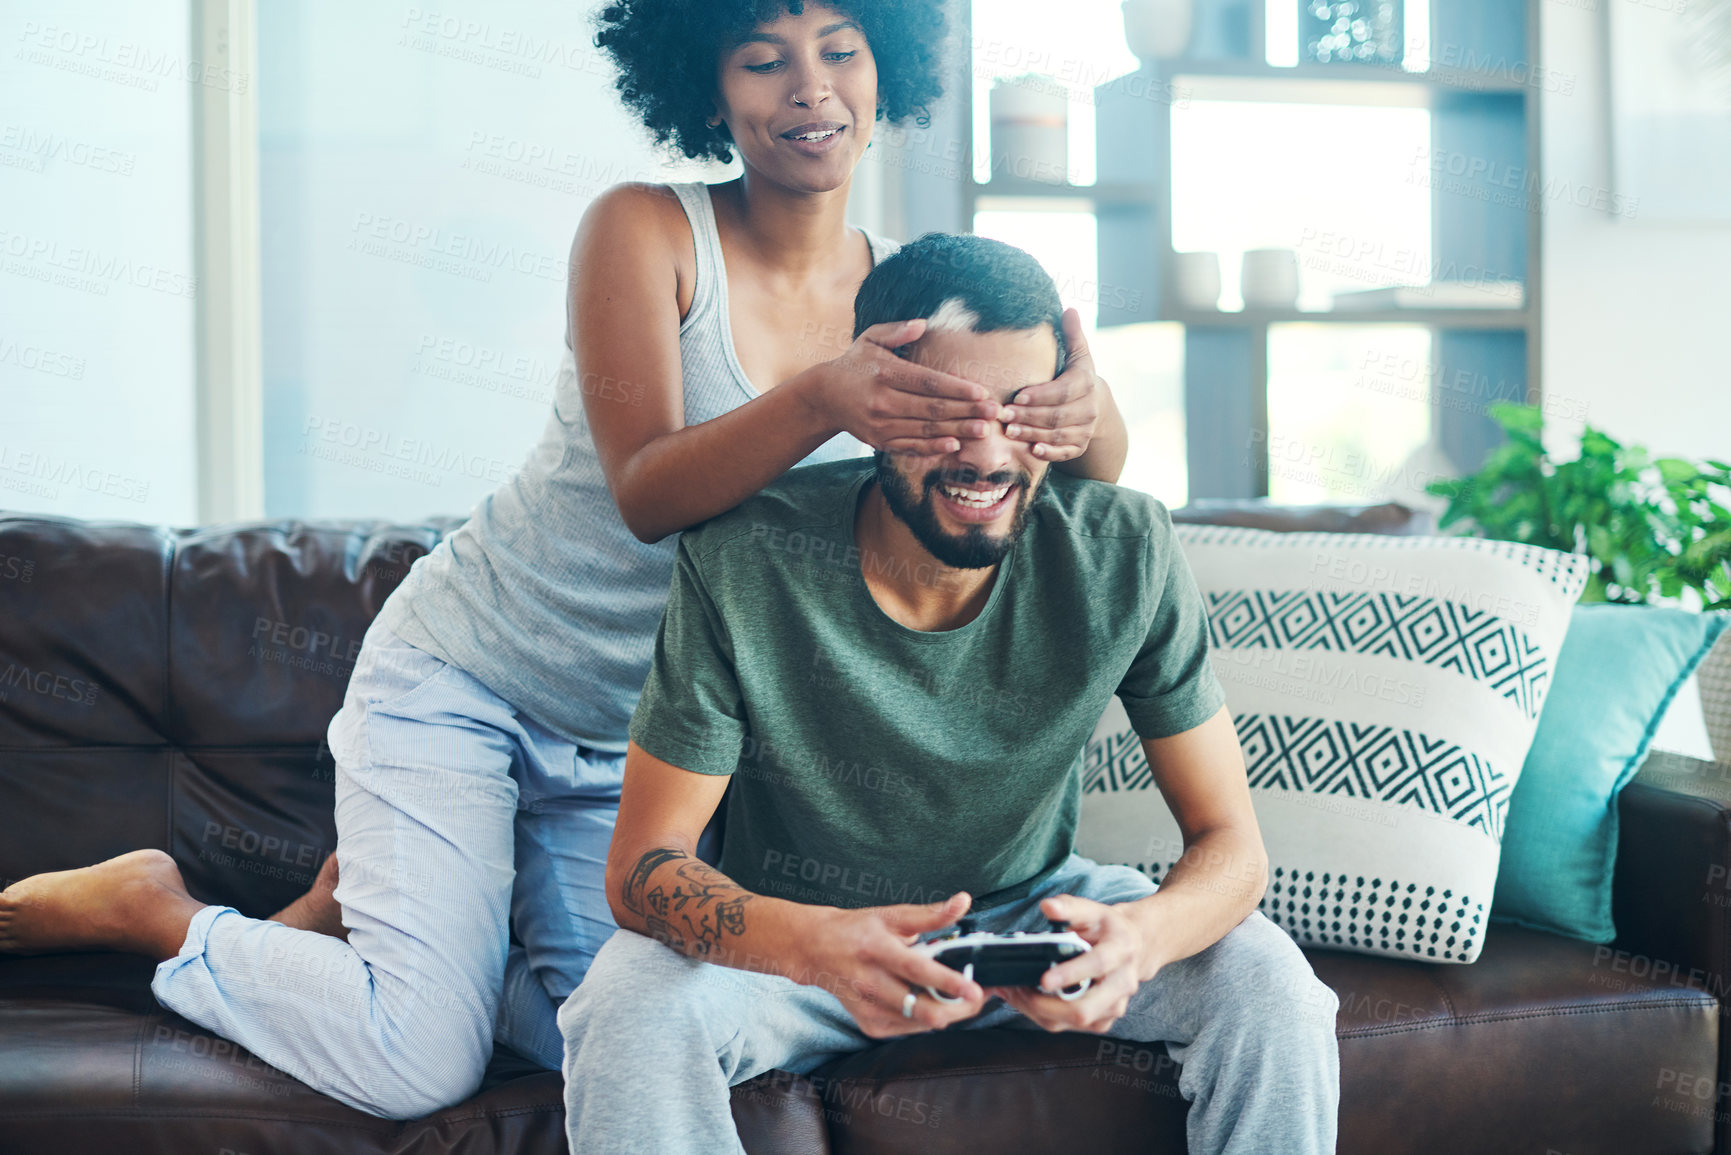 Buy stock photo Shot of a woman covering her boyfriend's eyes while he plays video games